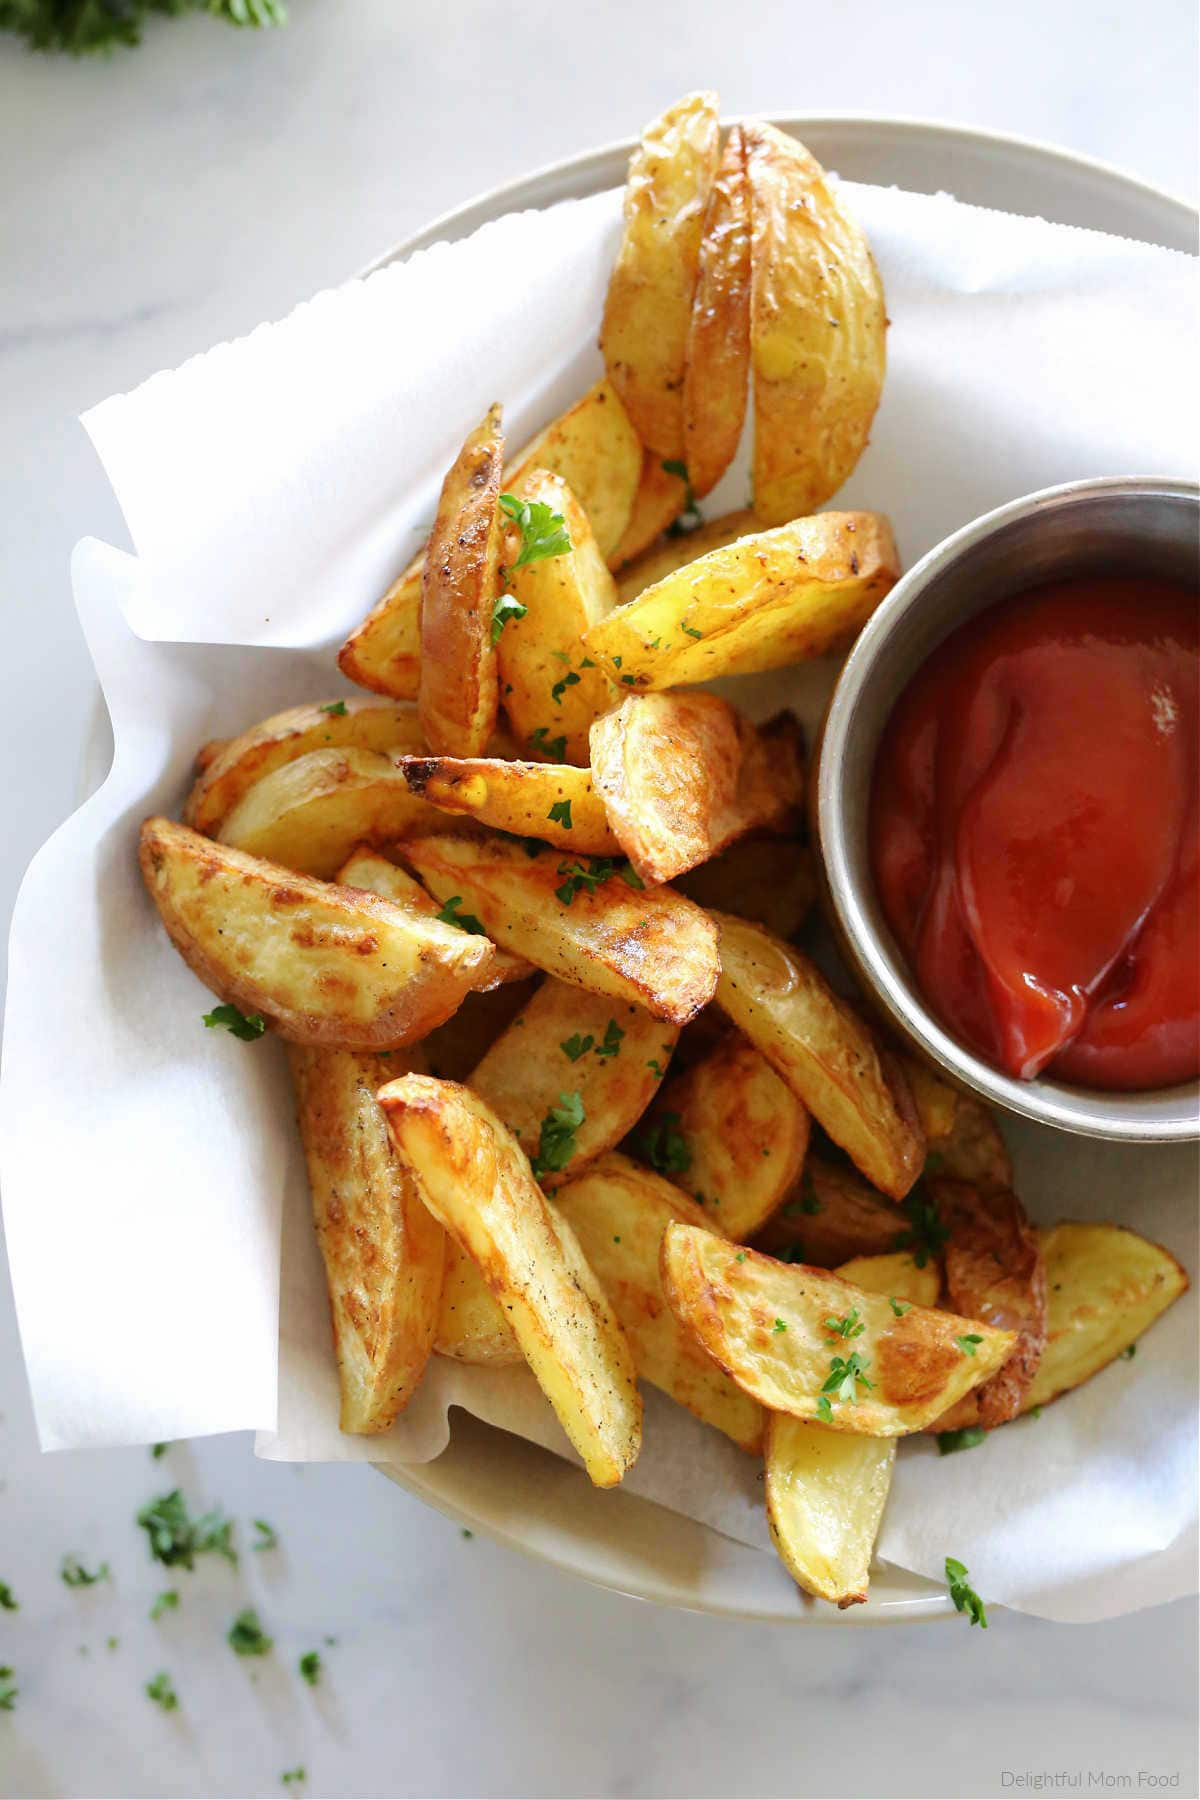 easy healthy homemade fries from scratch on a plate